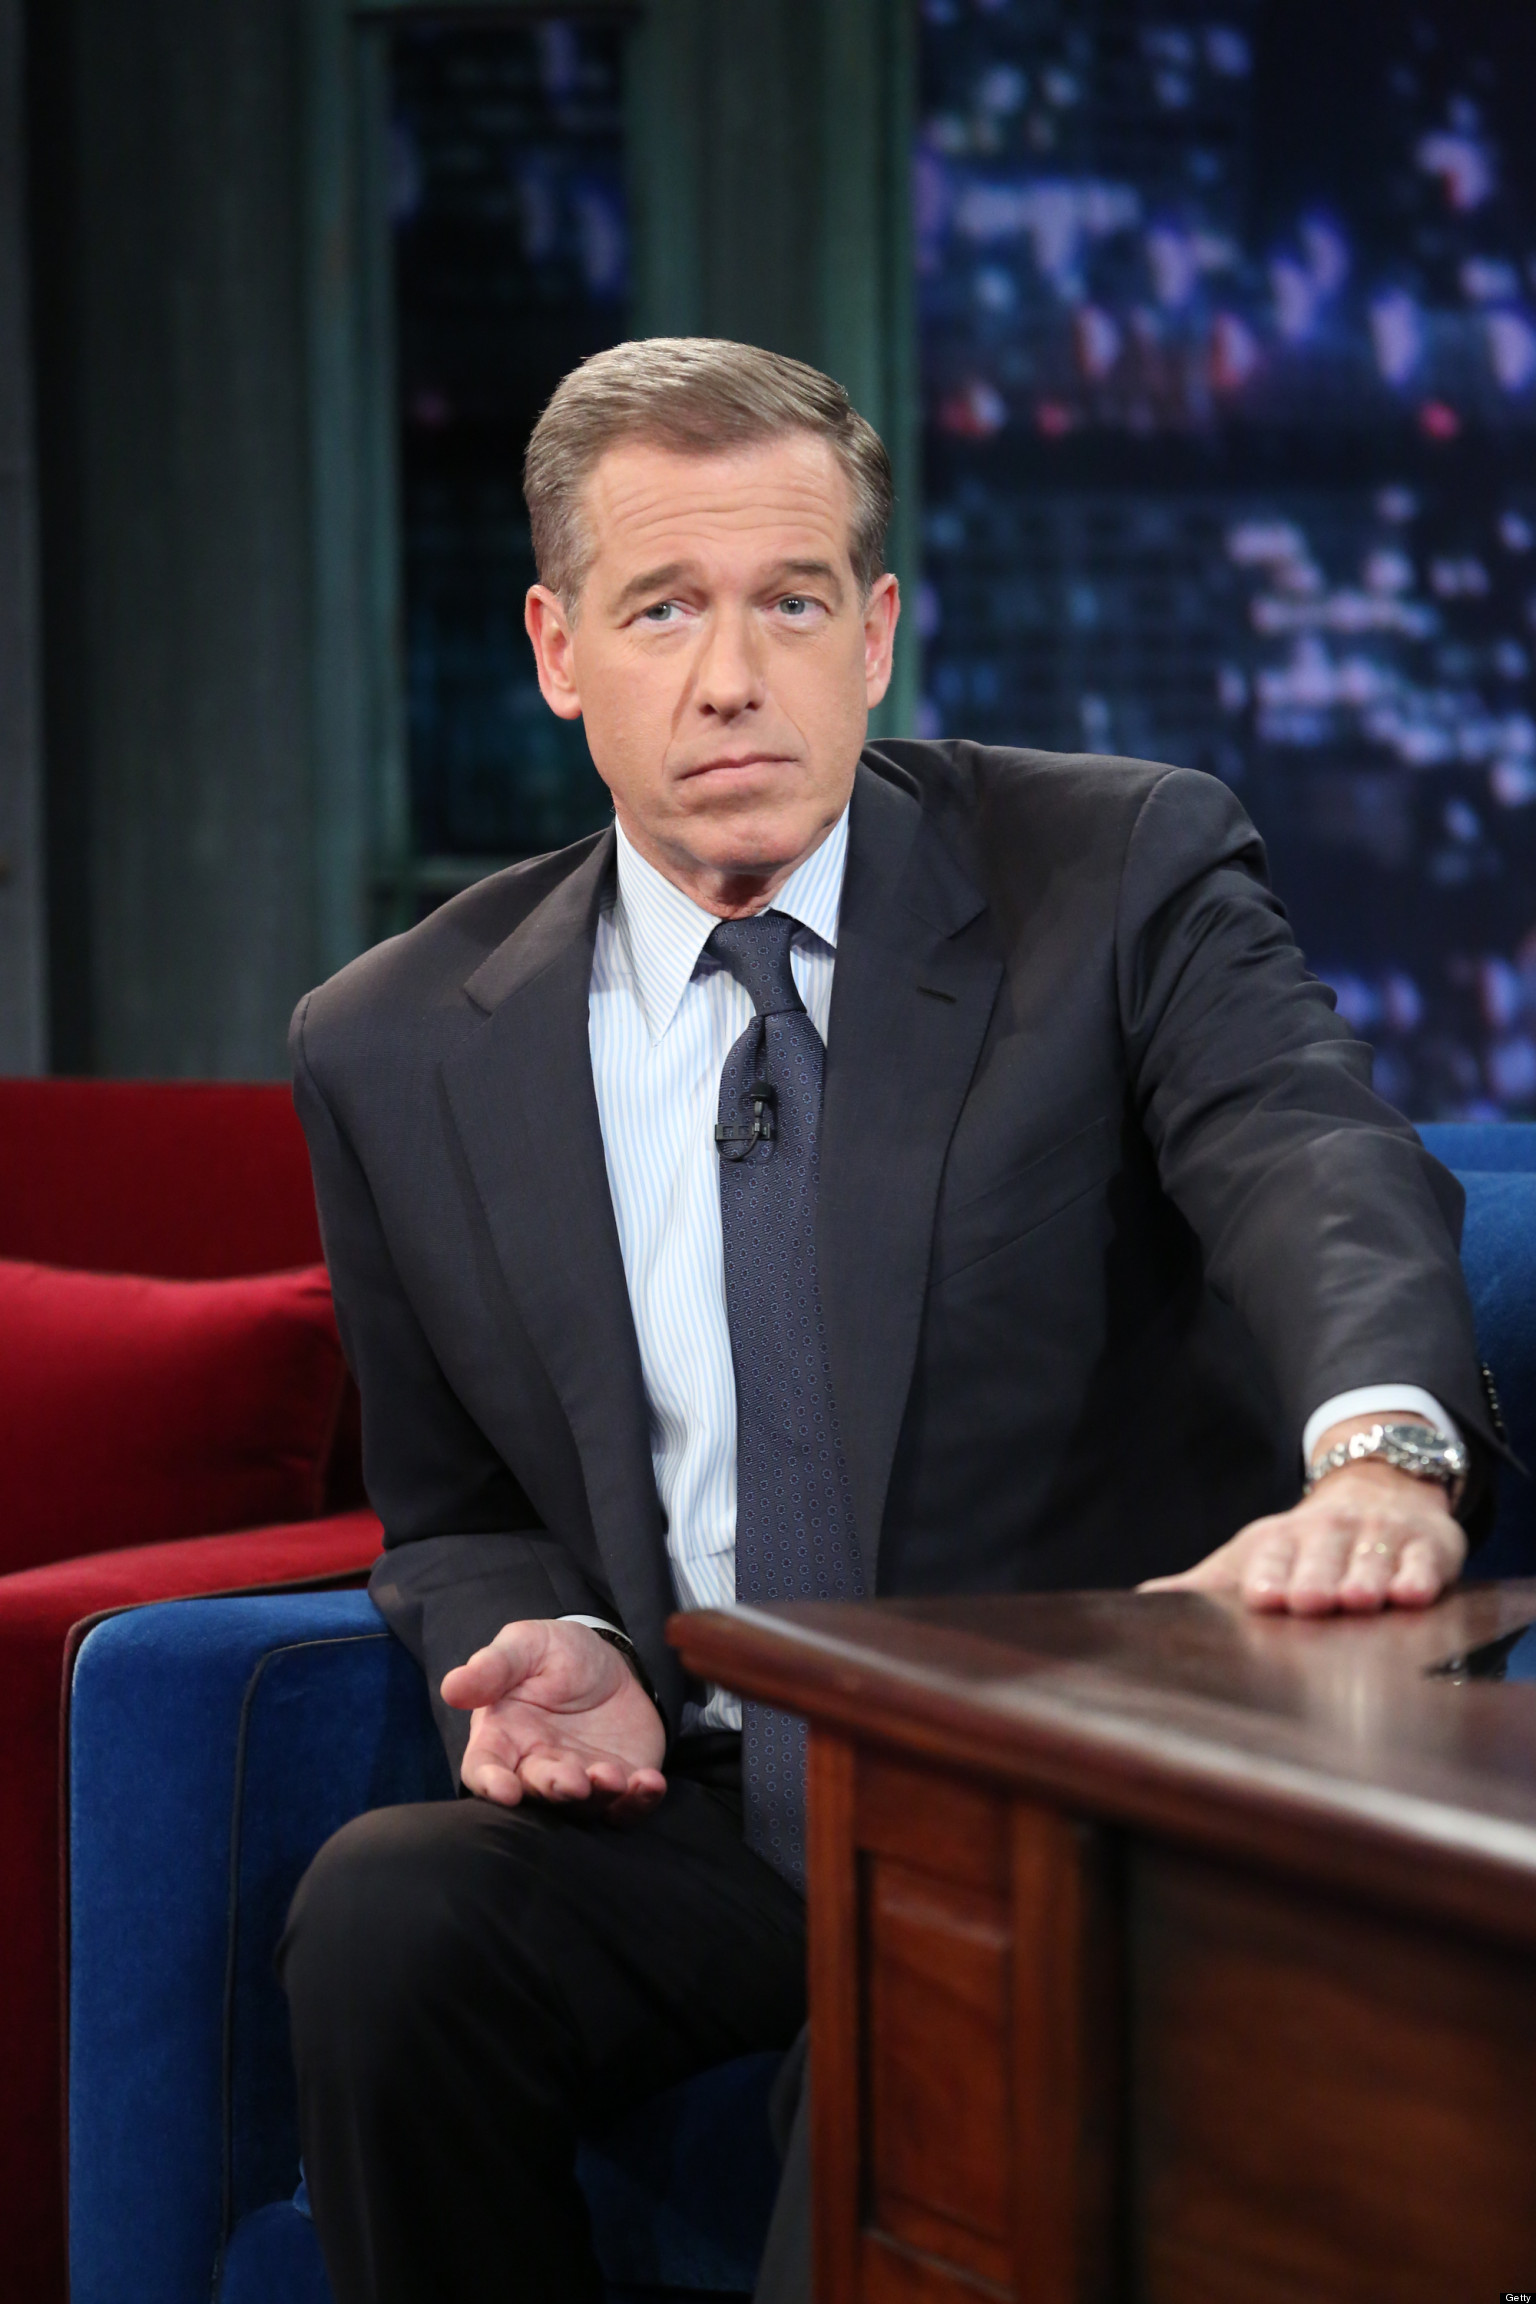 brian williams on 39 rock center 39 cancellation 39 i 39 m so proud of the work we did 39 huffpost. Black Bedroom Furniture Sets. Home Design Ideas